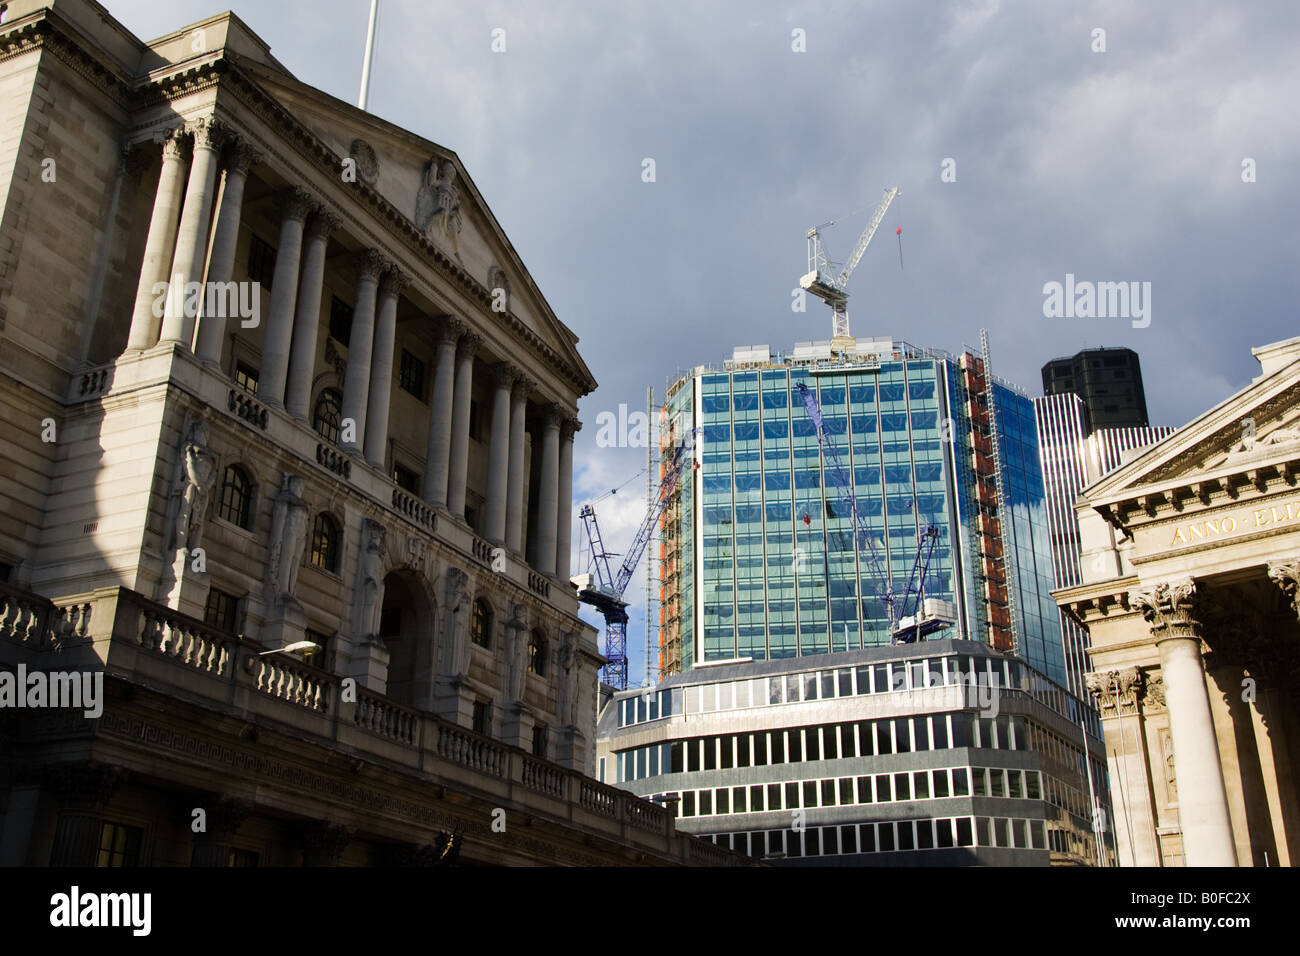 Construction work with cranes near The Bank of England London England United Kingdom - Stock Image